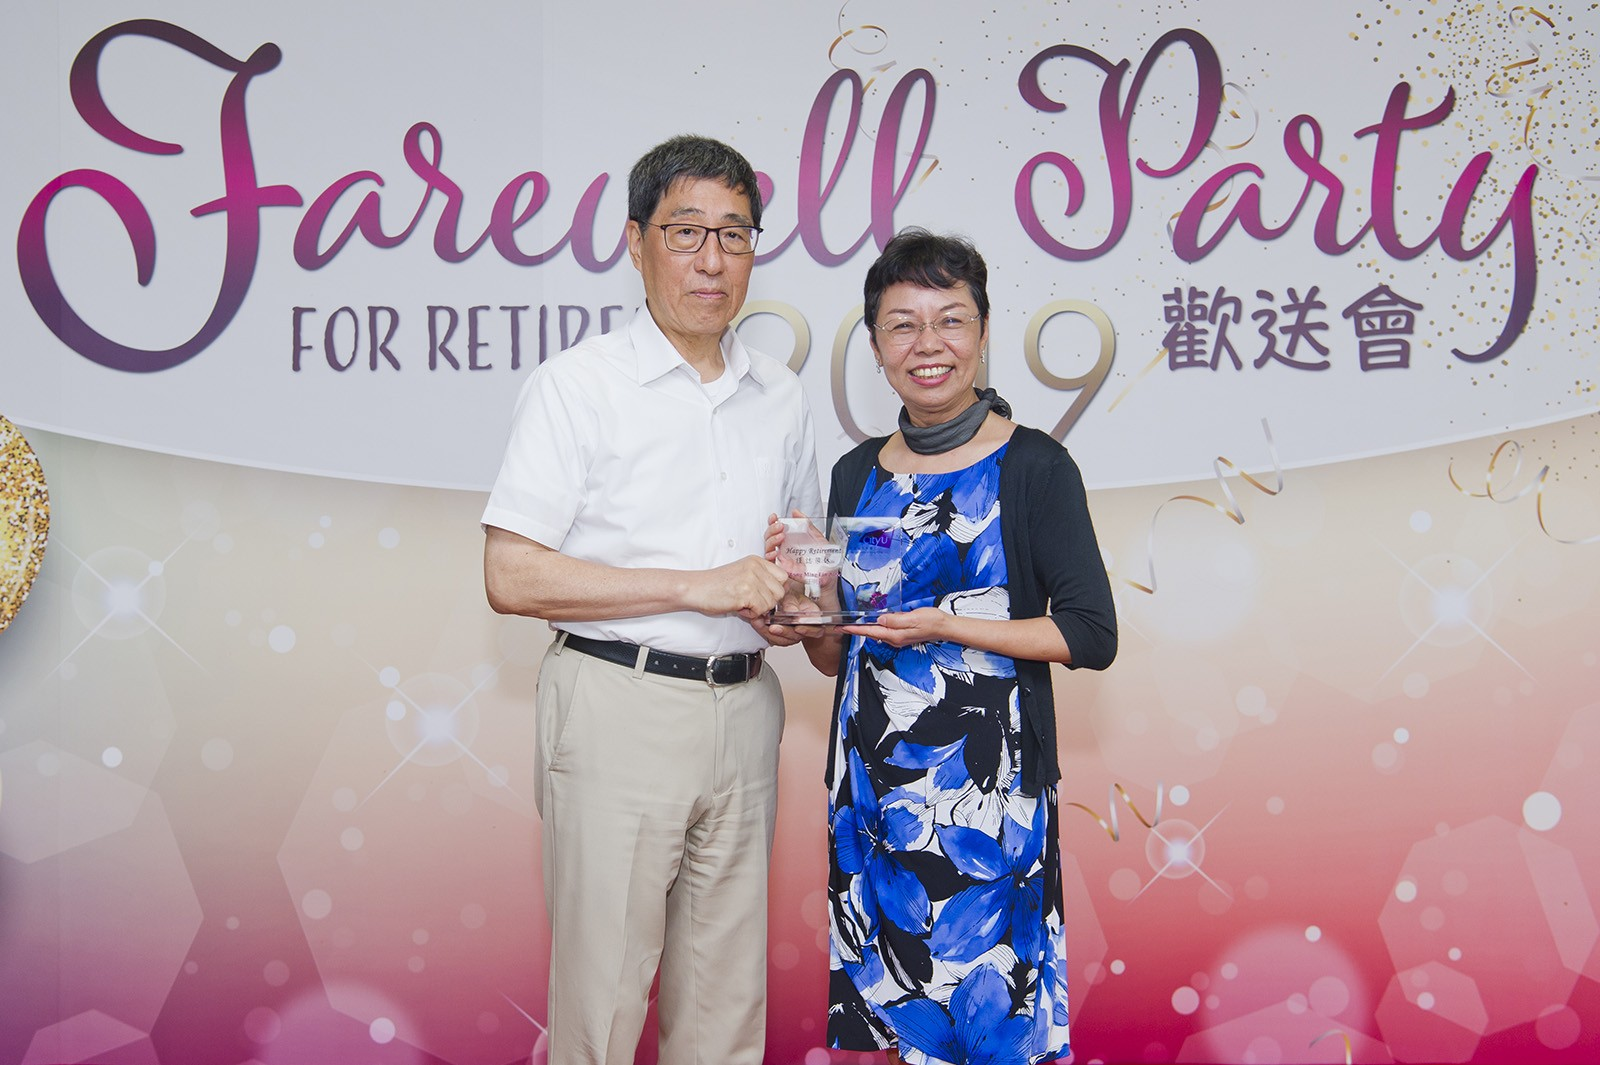 Professor Chong says she is most touched and gratified during her years at CityU when she witnessed her students' steady development.